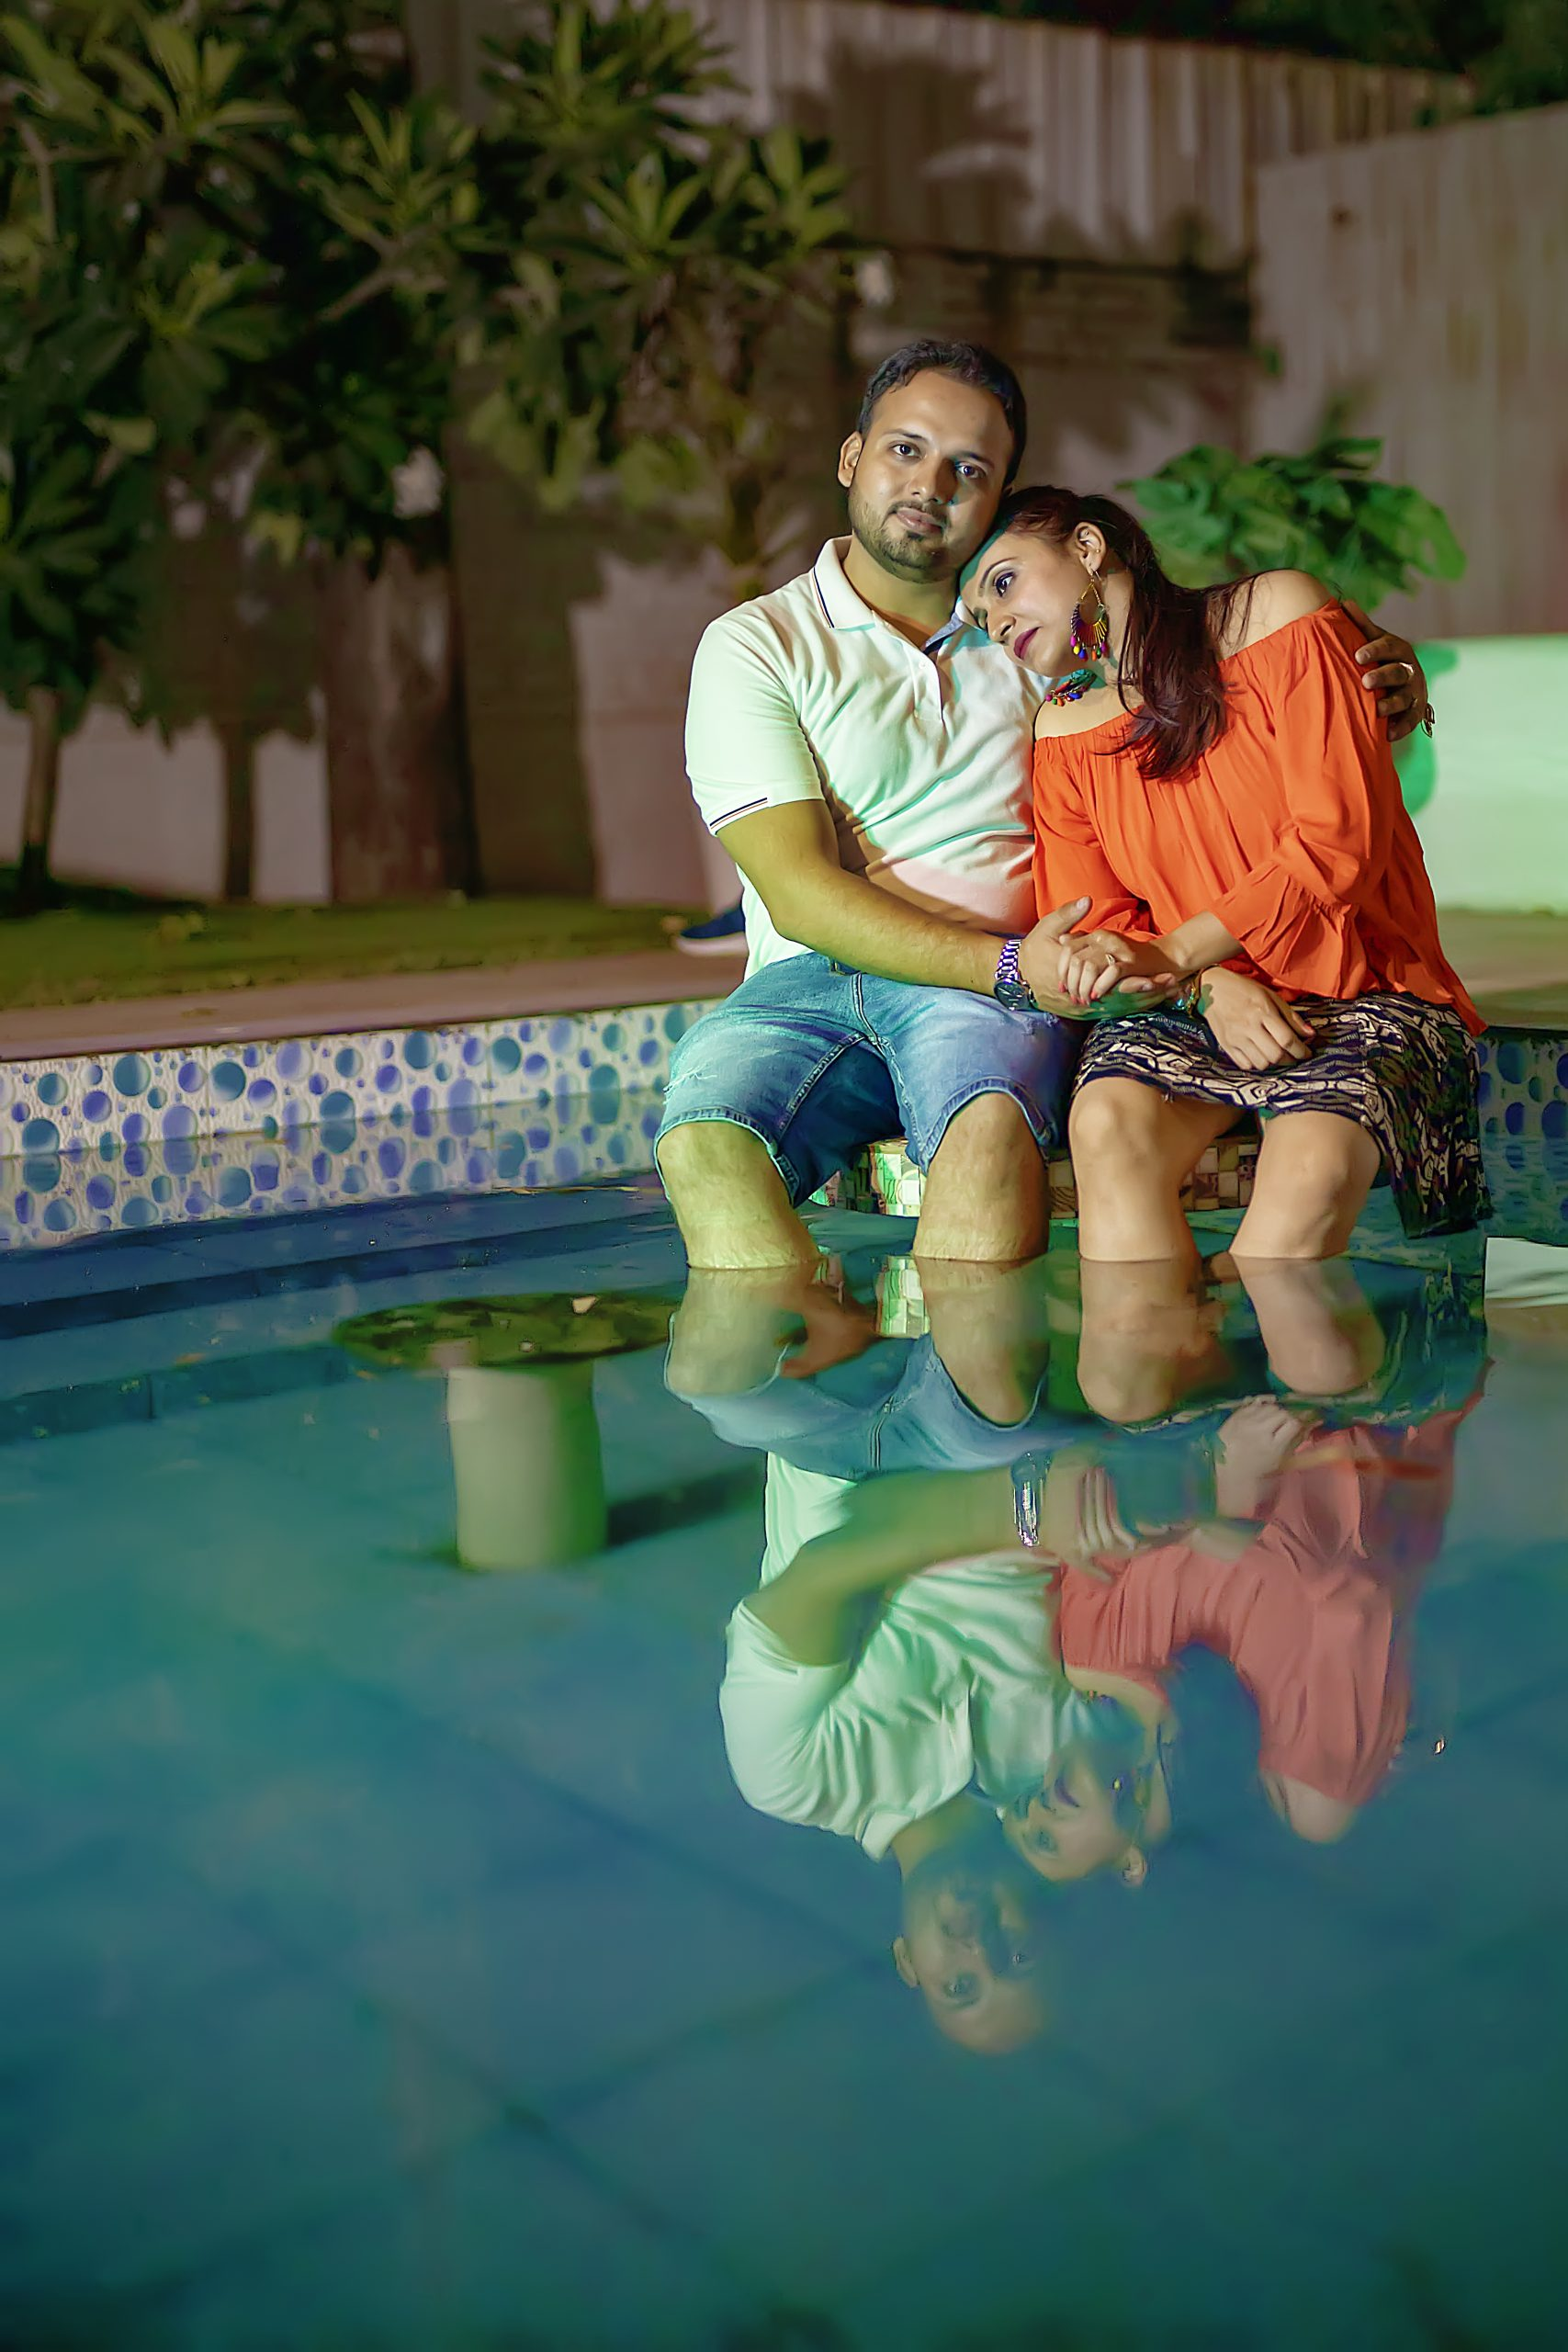 A couple romancing in pool